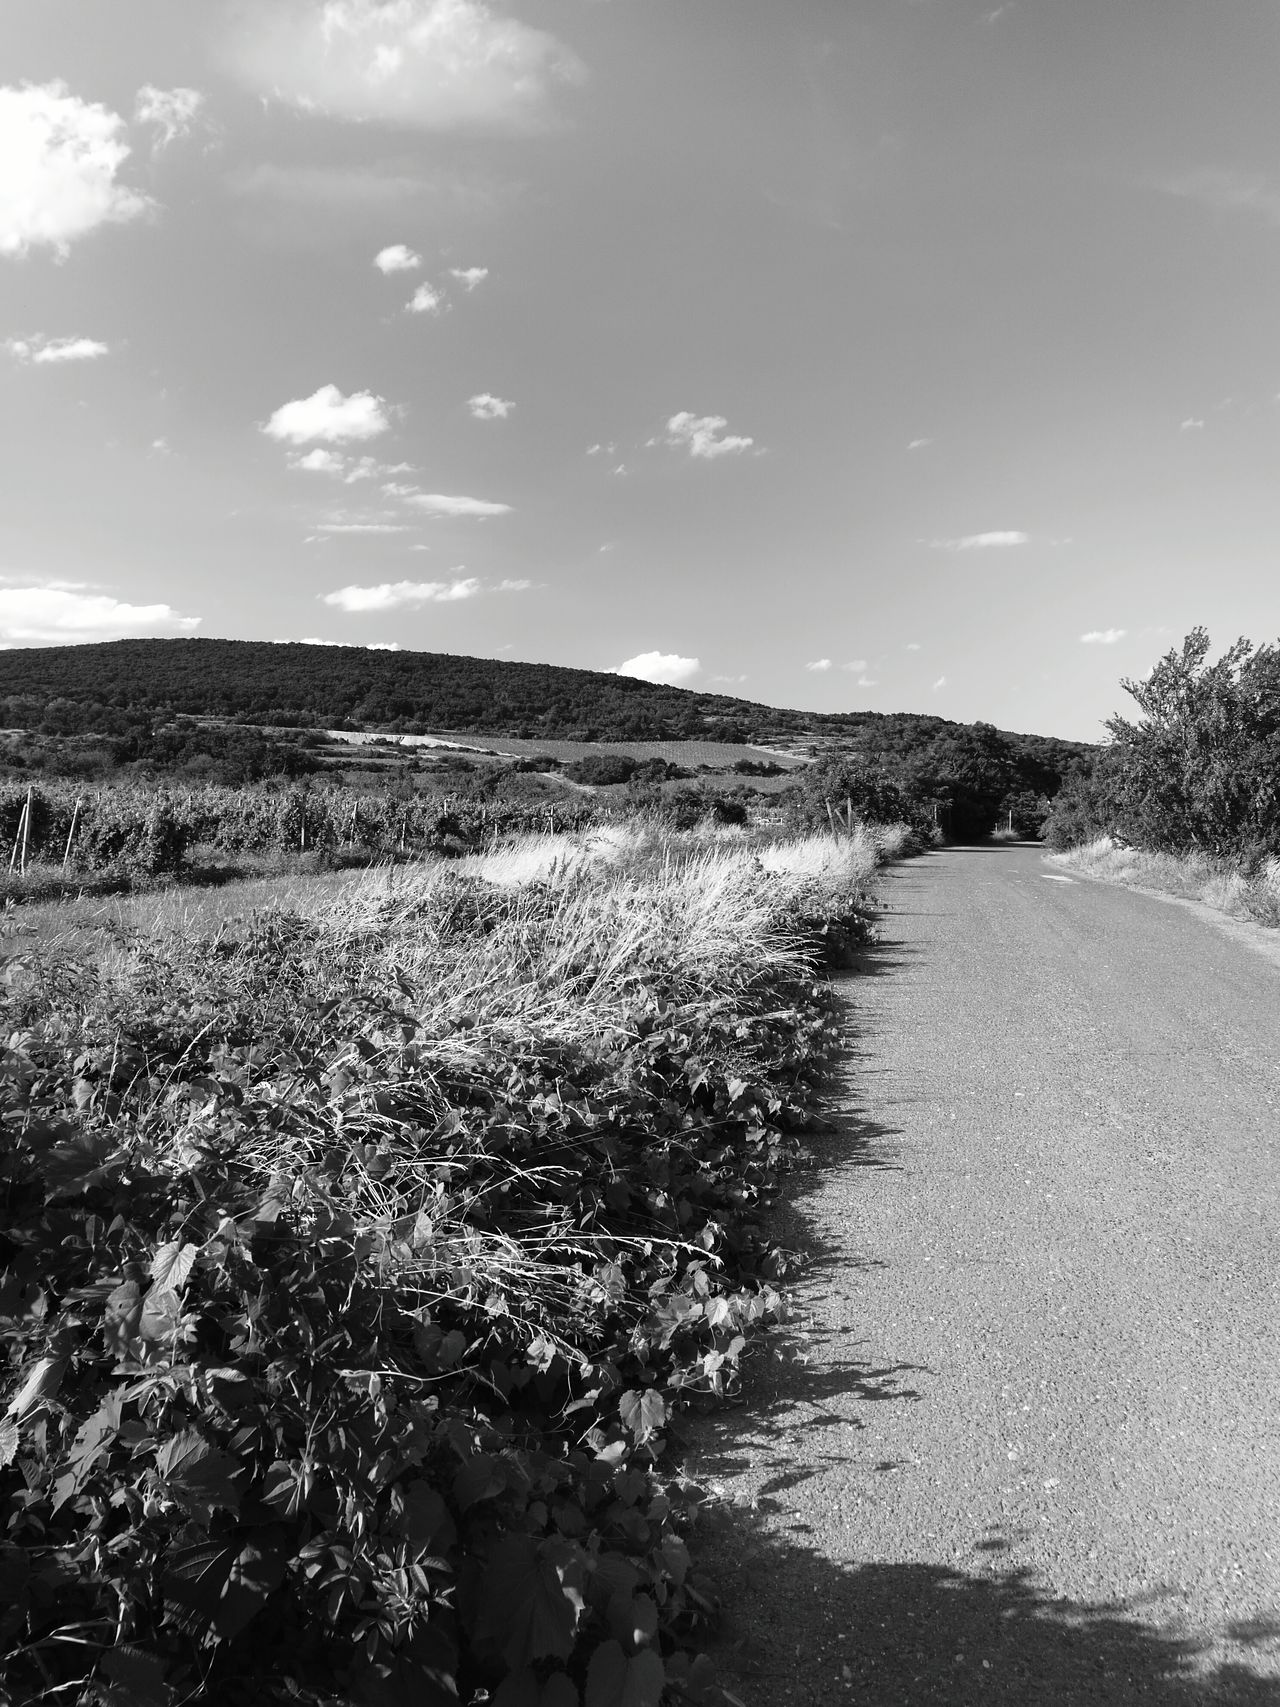 Wine Yards Hills Road Landscapes Landscape Outdoor Photography Outdoors No People Blackandwhite Photography Black And White Huaweip9monochrome HuaweiP9 Monochrome Photography